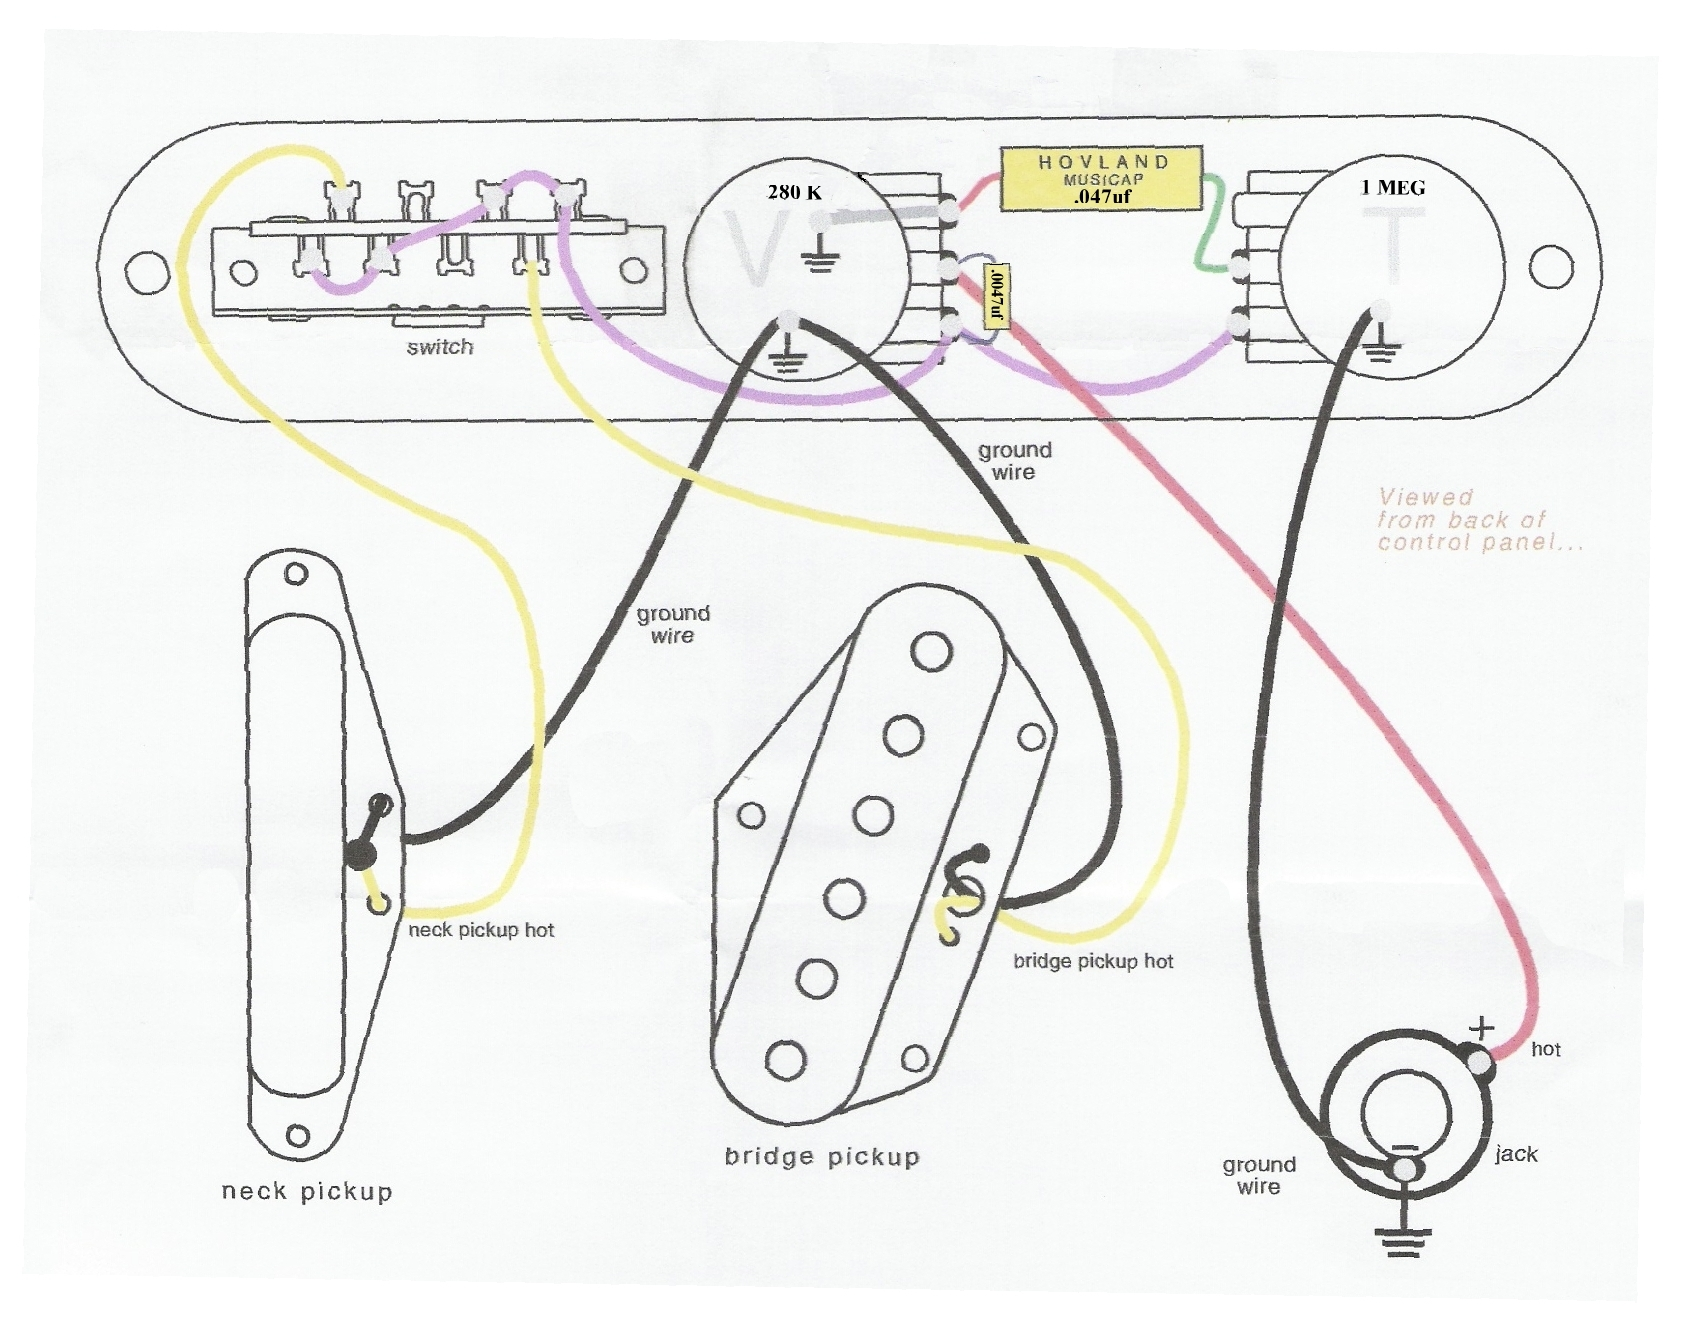 fender deluxe nashville telecaster wiring diagram wiring diagram website